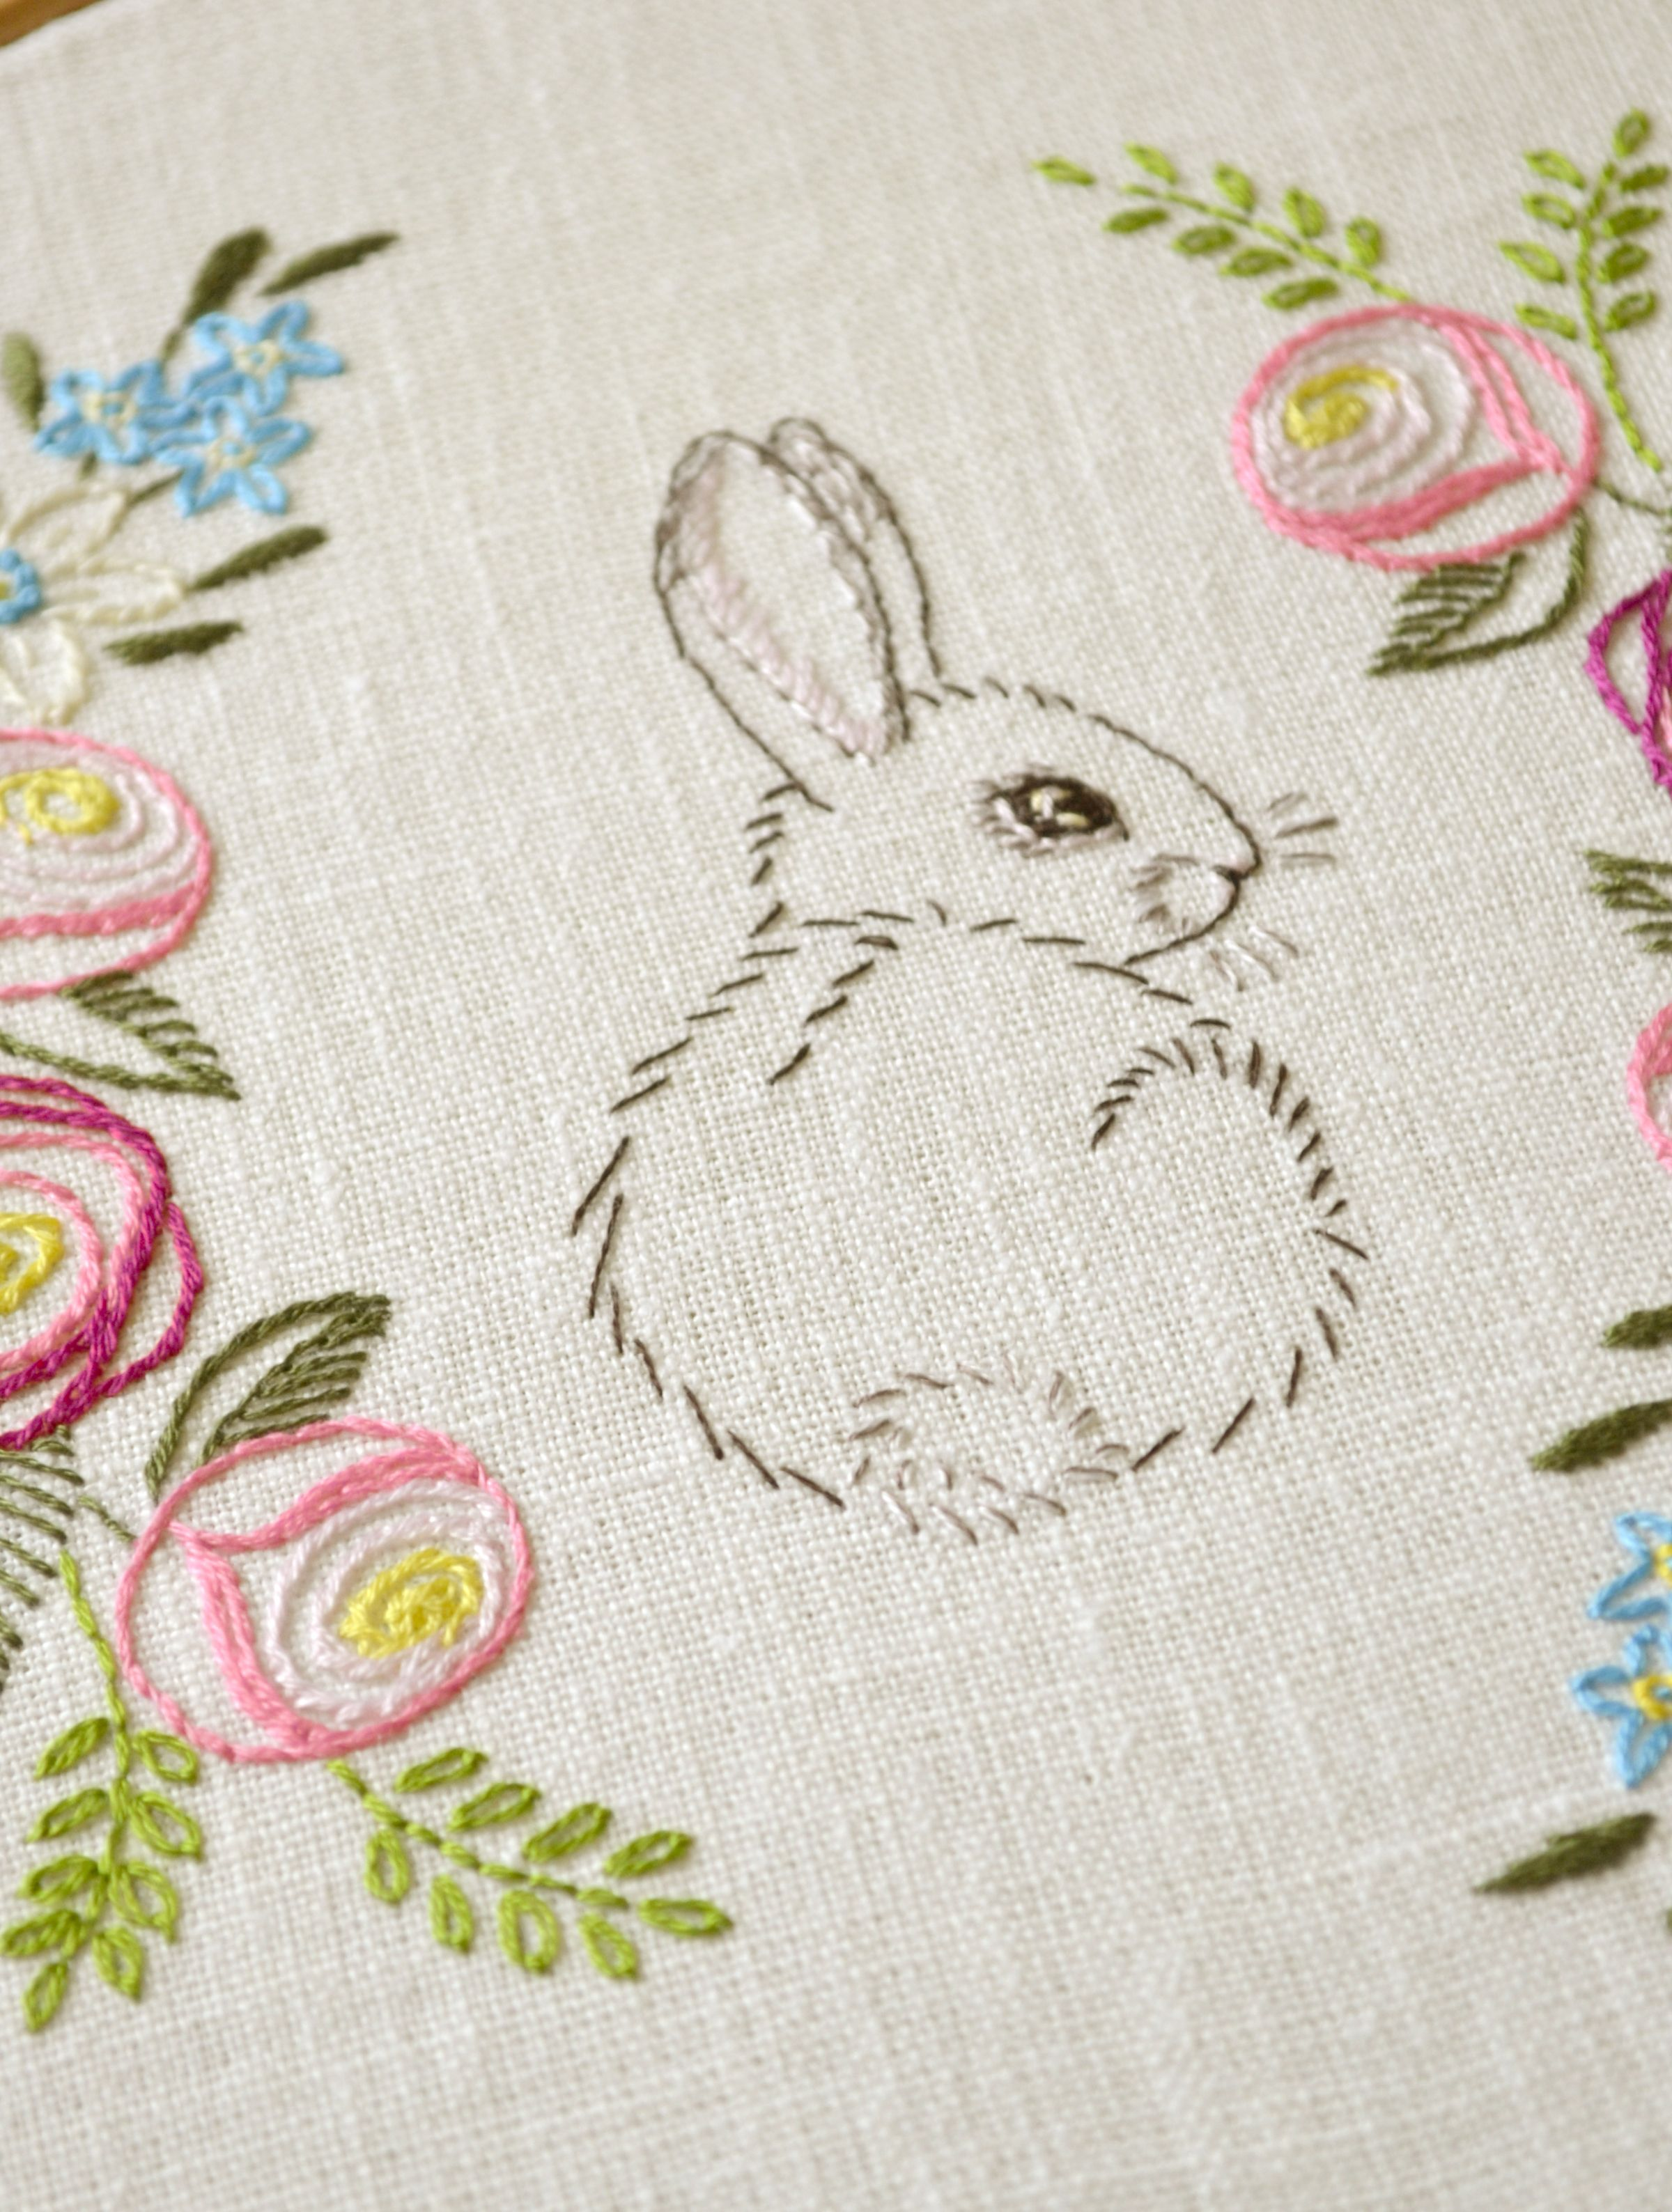 Easter bunny flowers hand embroidery naiveneedle